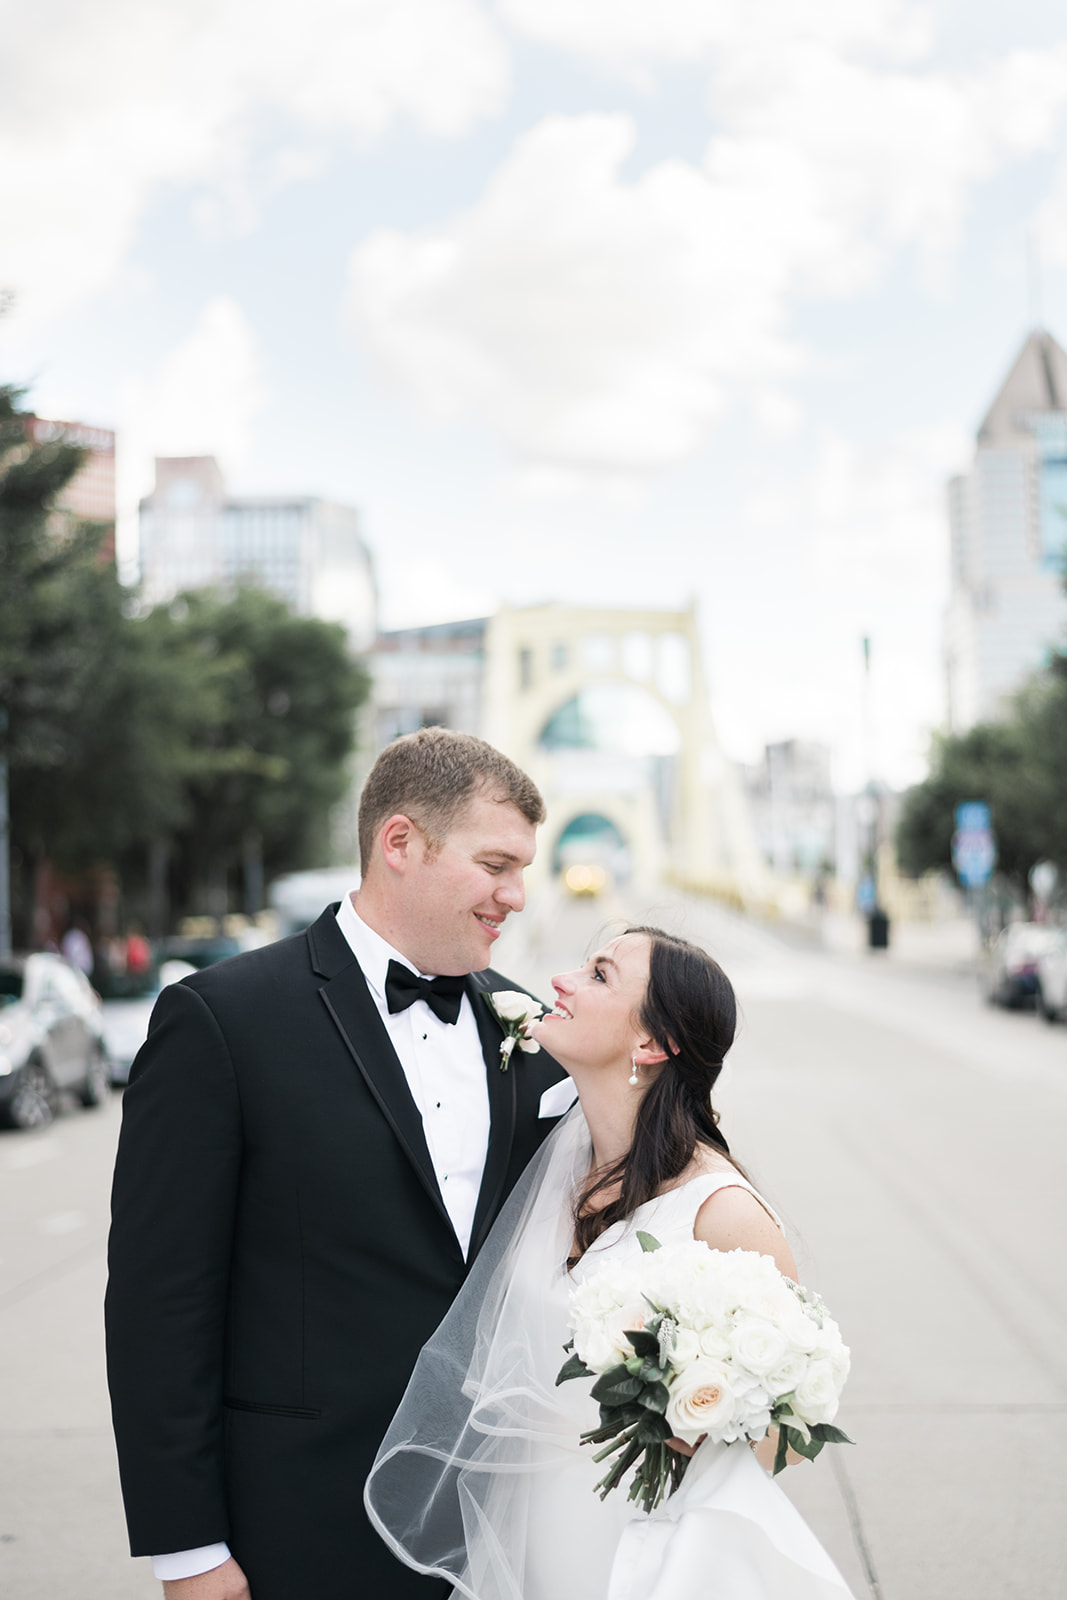 PNC Park Wedding - Bride and groom pose | Exhale Events. Find more wedding inspiration at exhale-events.com!